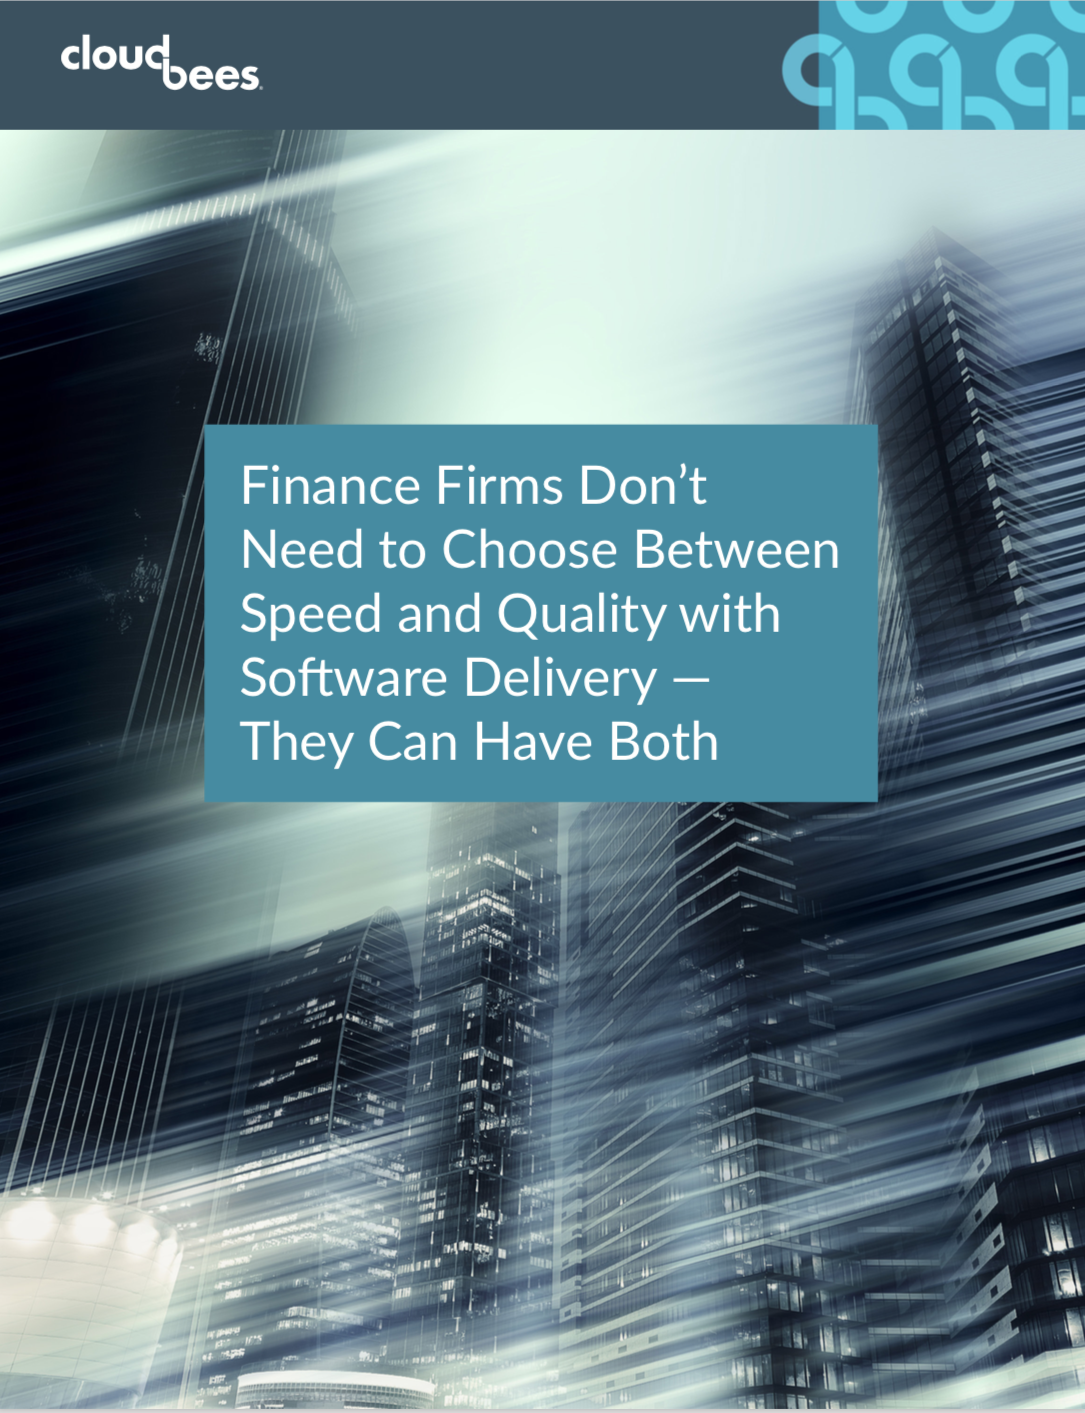 Finance Firms Don't Need to Choose Between Speed and Quality.png